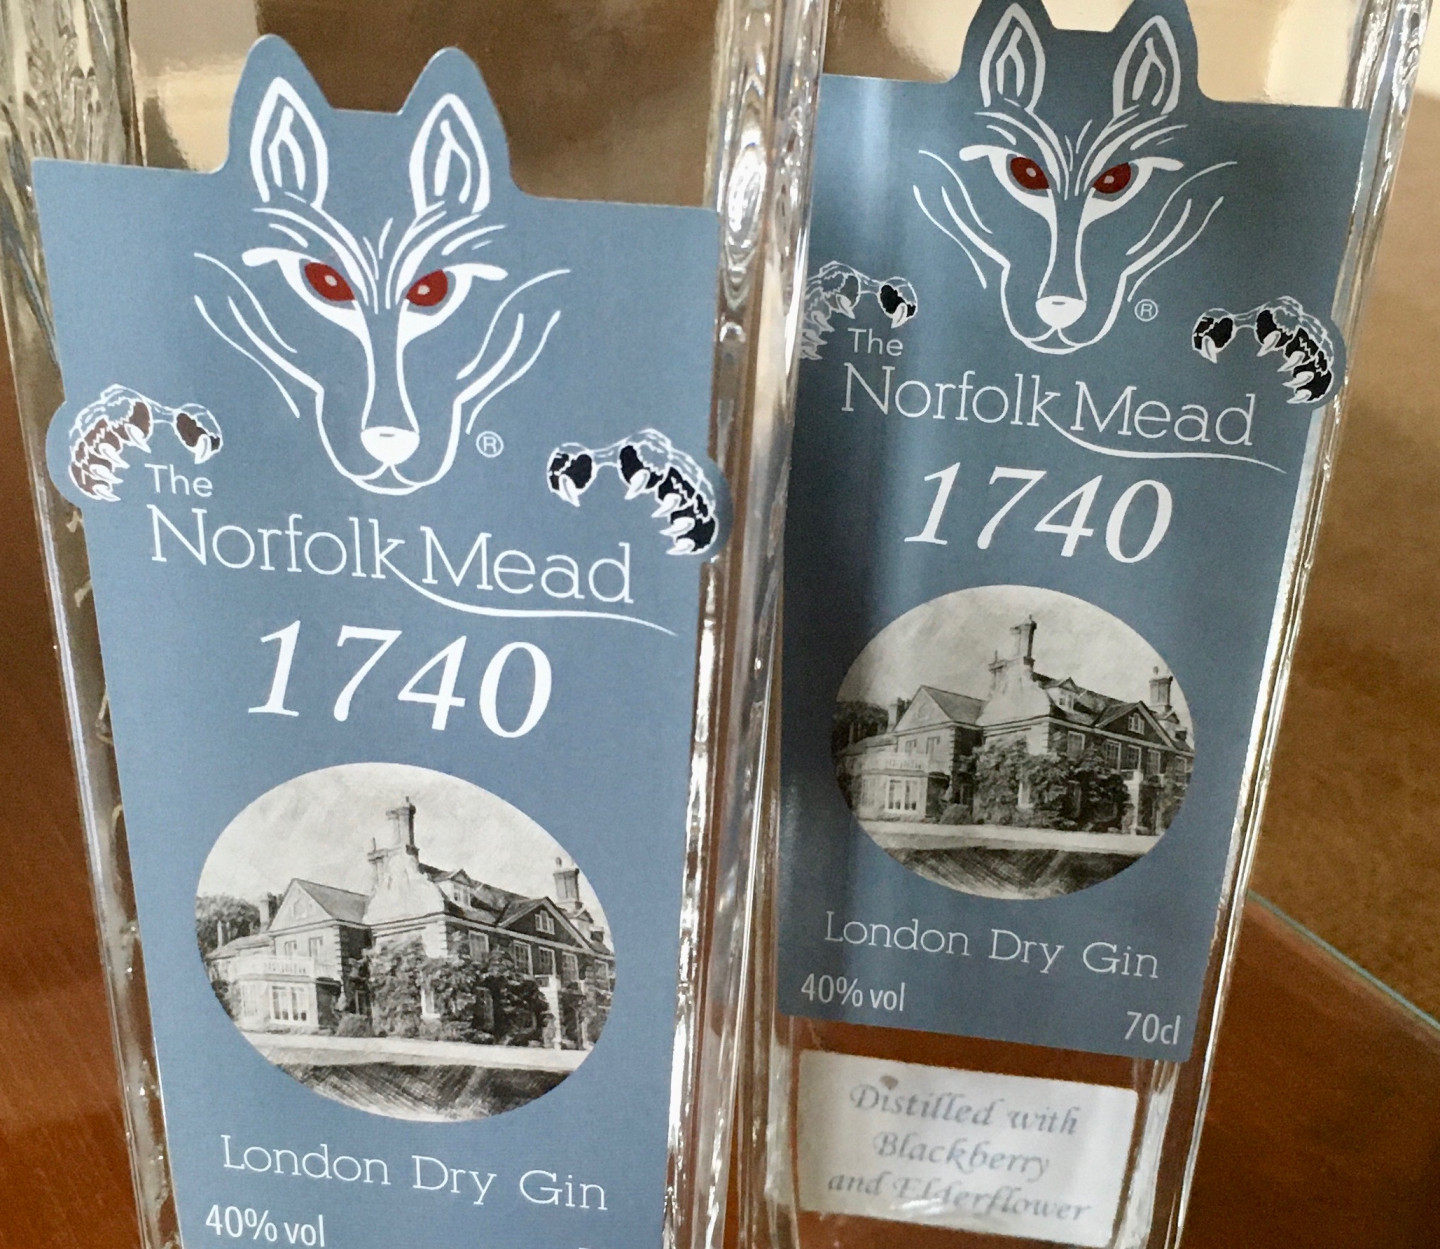 Treat yourself with The Norfolk Mead Takeaway Afternoon Tea and 1740 Gin special offer